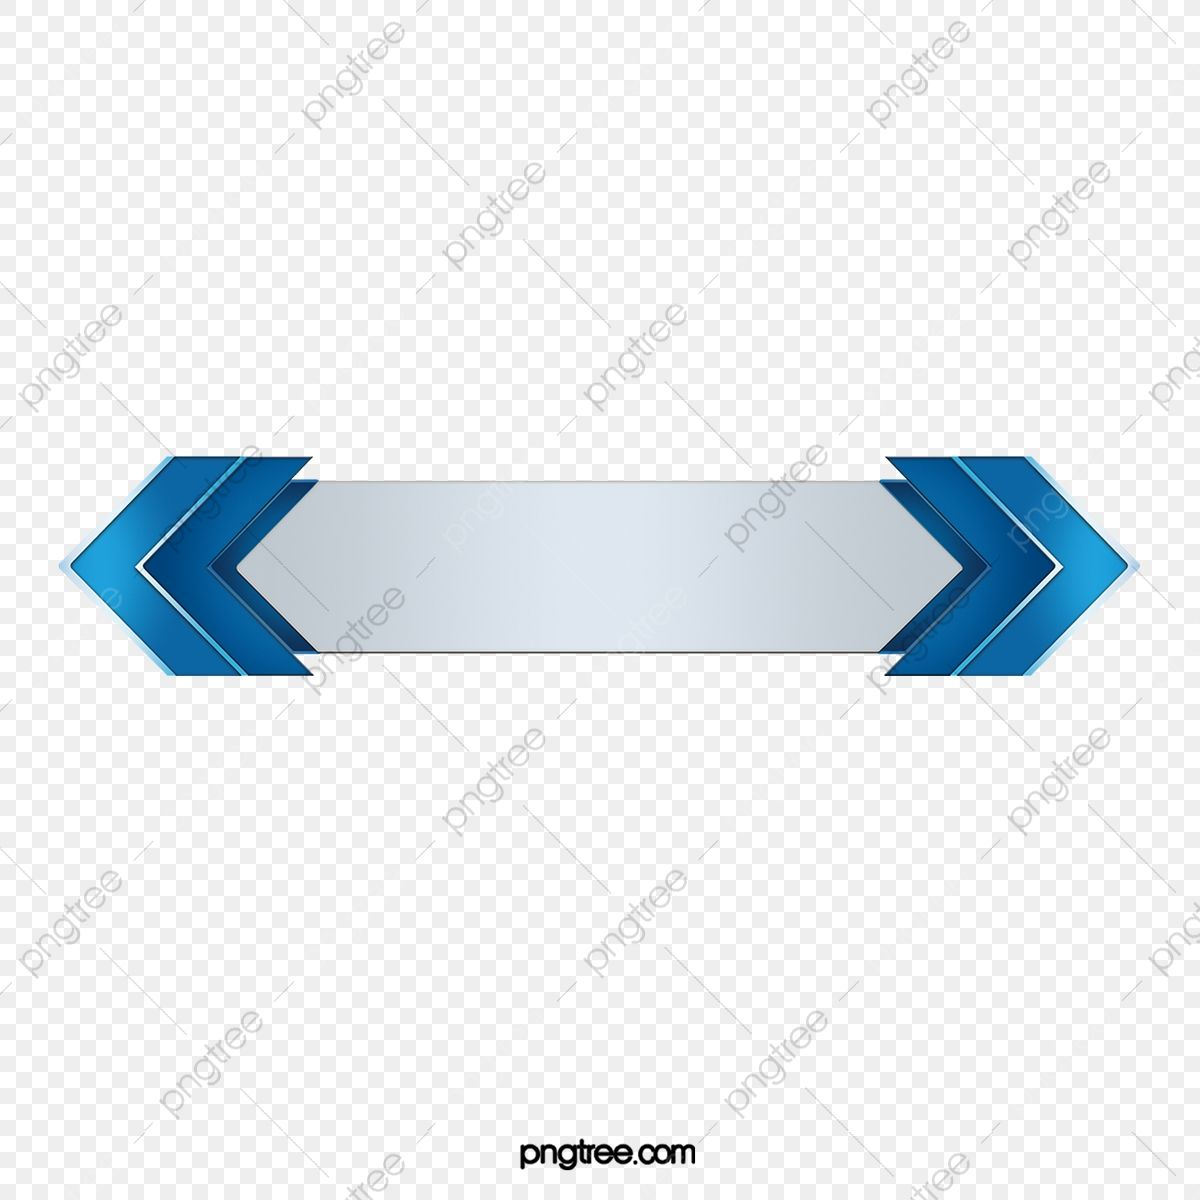 Blue Double Material Blue And Arrow Png Transparent Clipart Image And Psd File For Free Download Arrow Background Clipart Images Prints For Sale